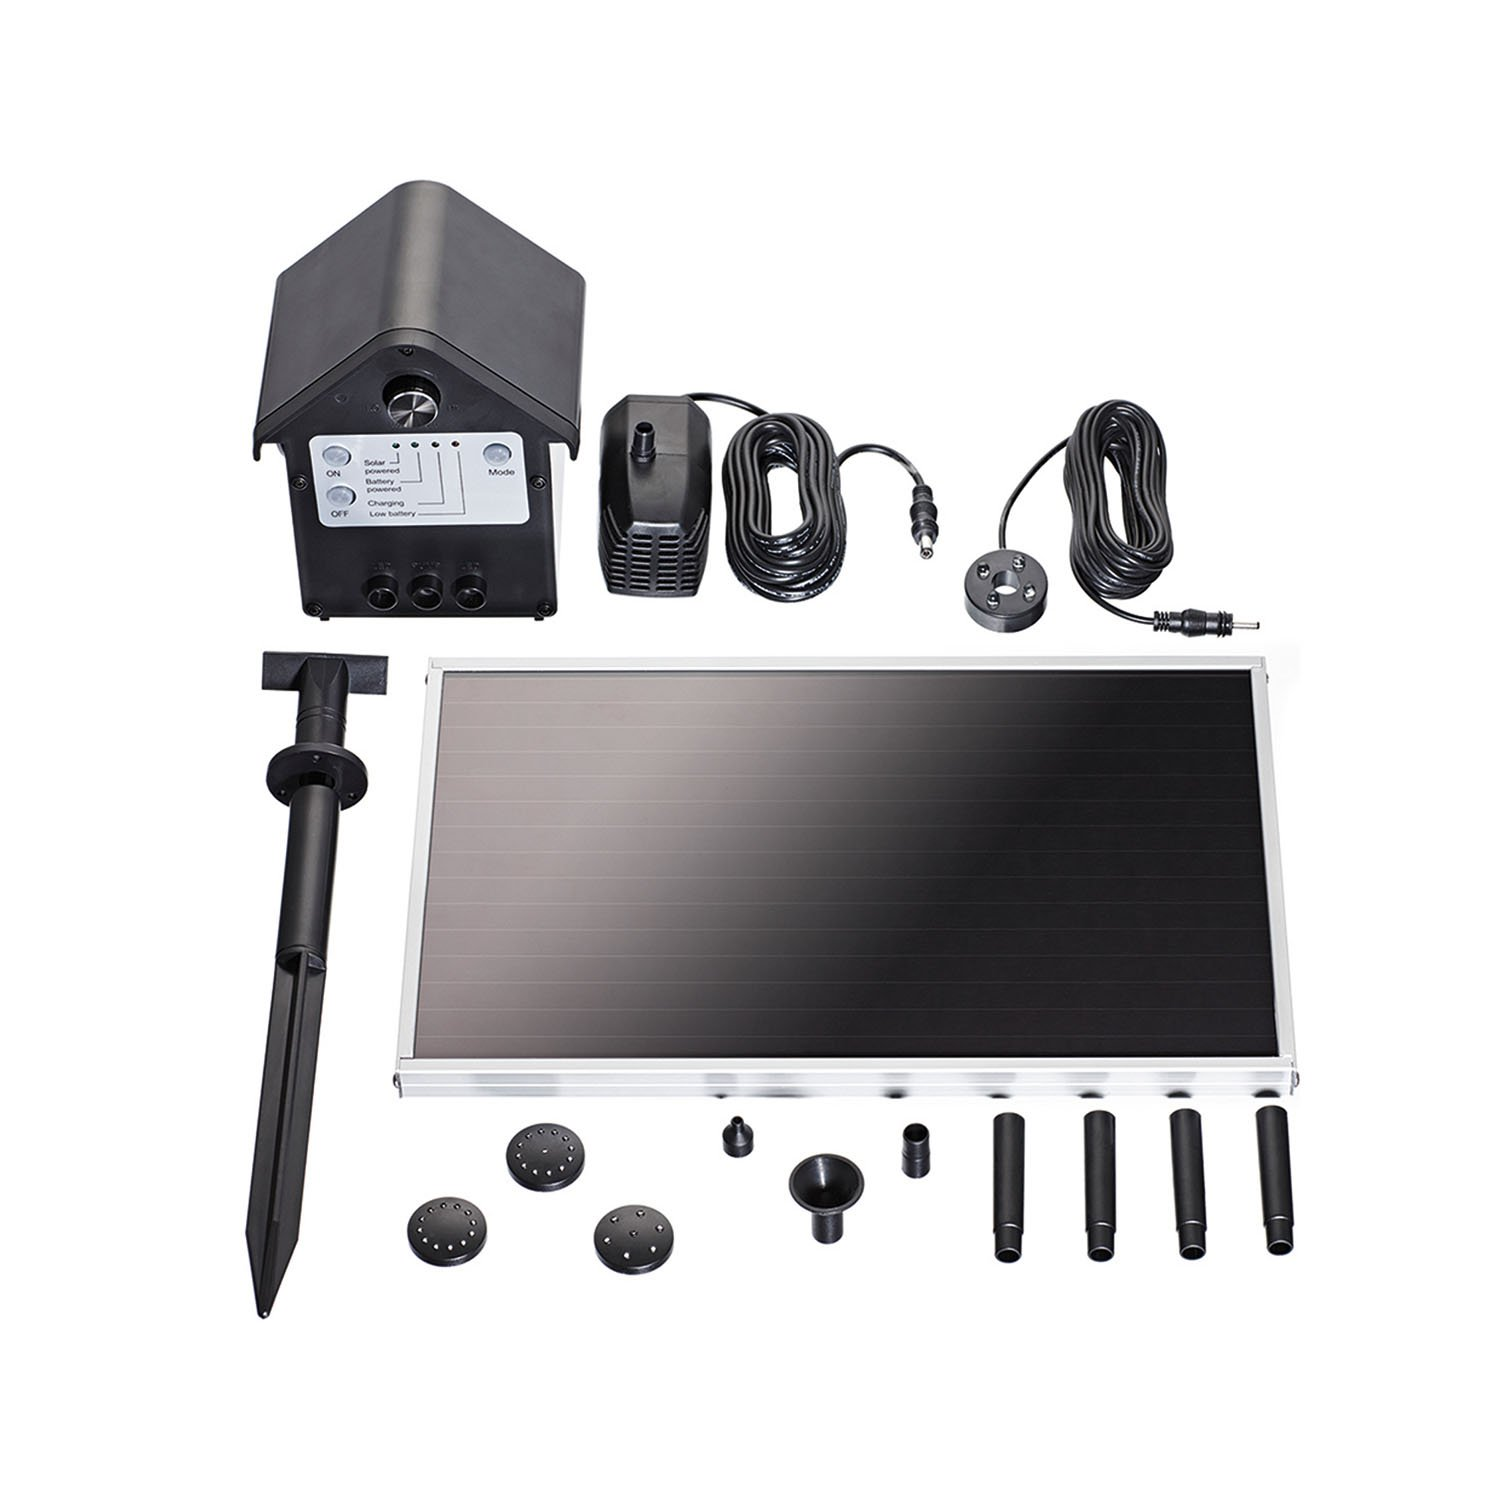 pond boss PF66SOL-B Solar Fountain Pump Kit with Rechargeable Battery, 66 GPH by pond boss